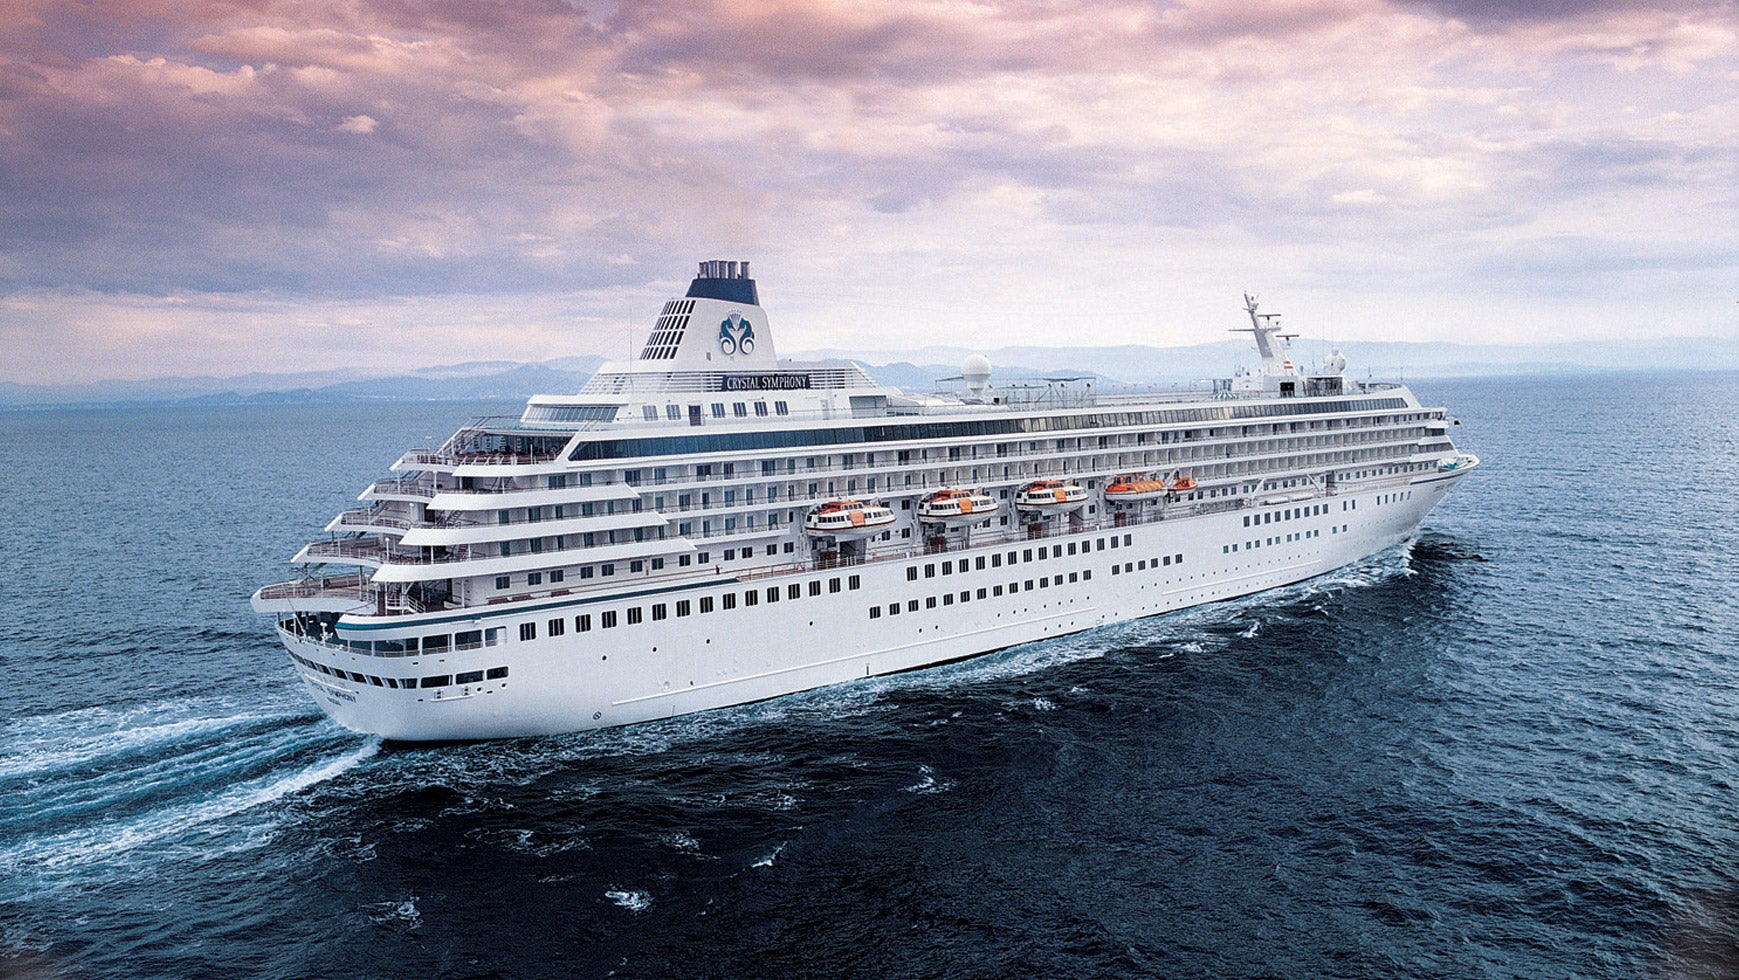 Earn 25,000 AMEX Membership Rewards Points for Taking a $1,000+ Cruise (Targeted)